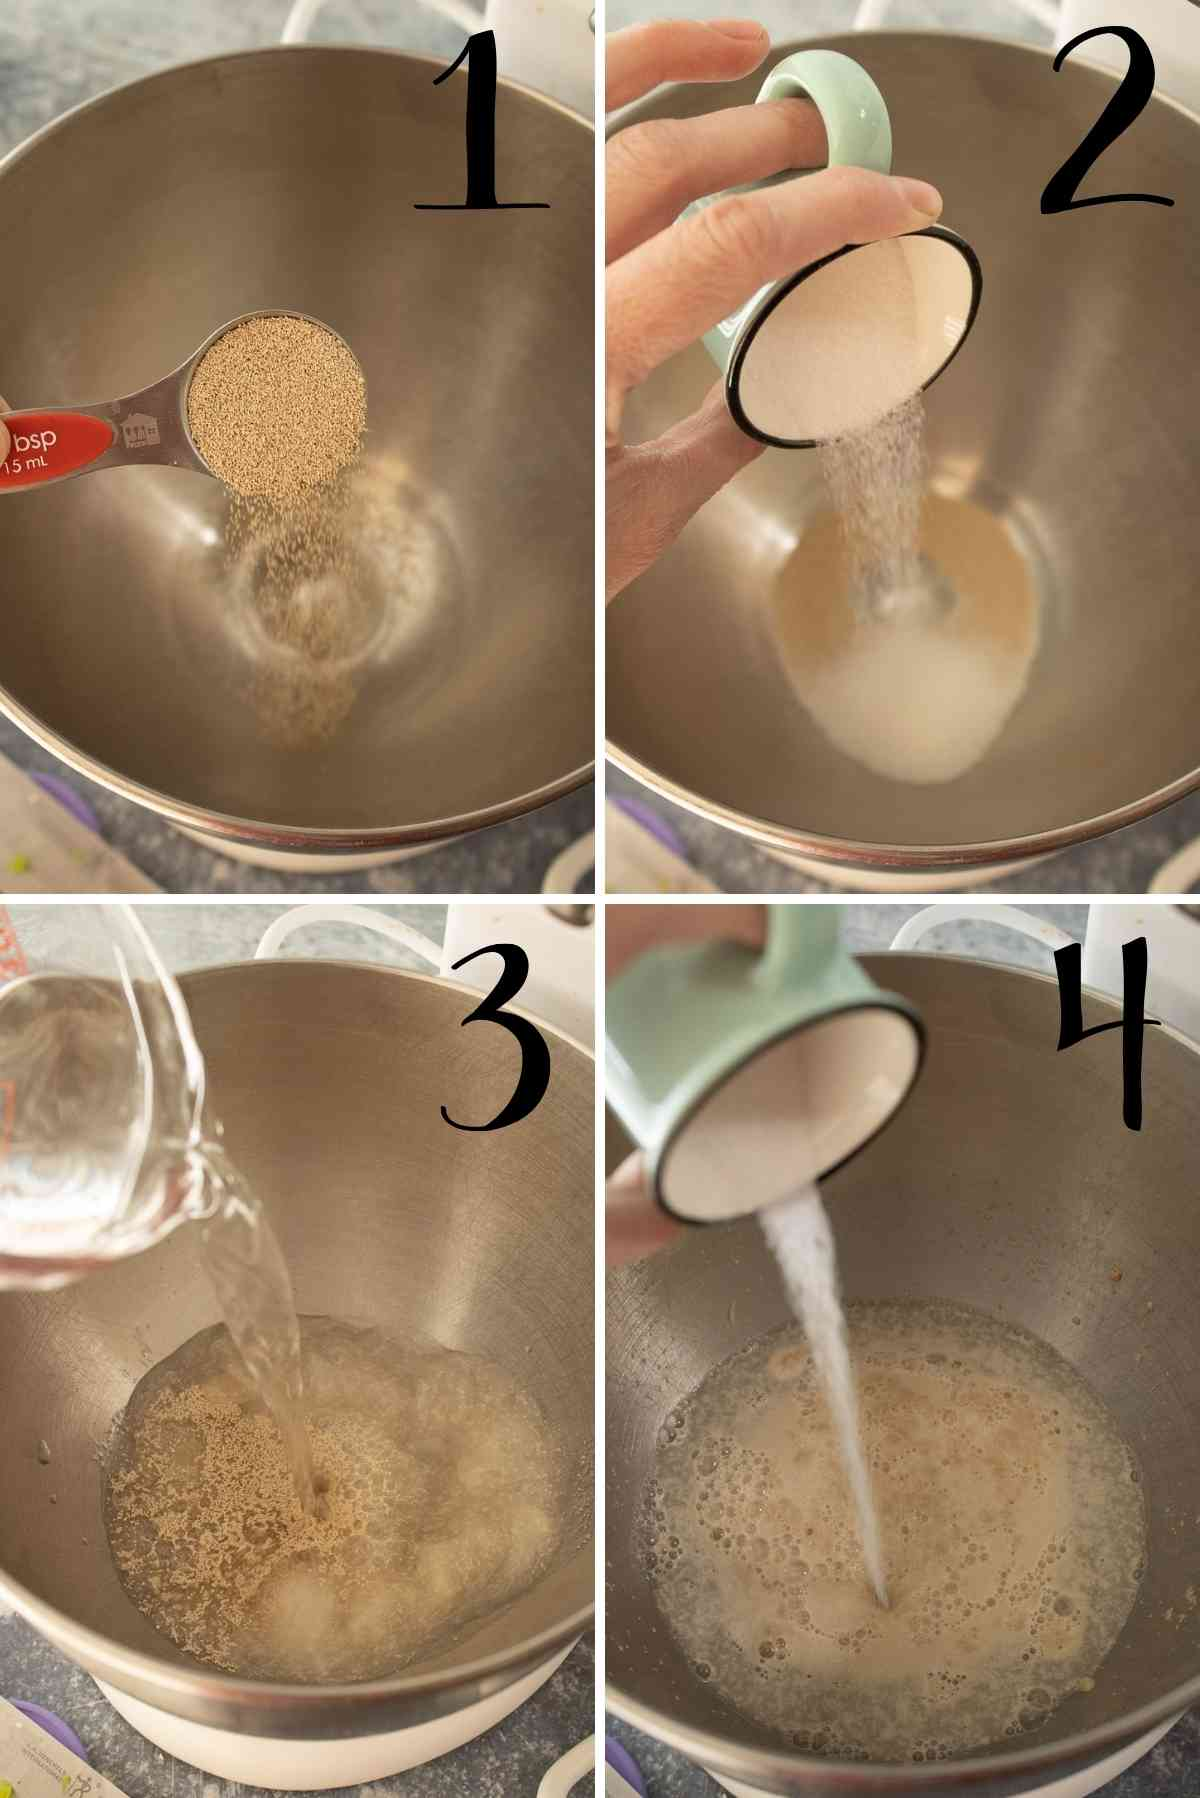 Yeast, sugar and water combined to activate.